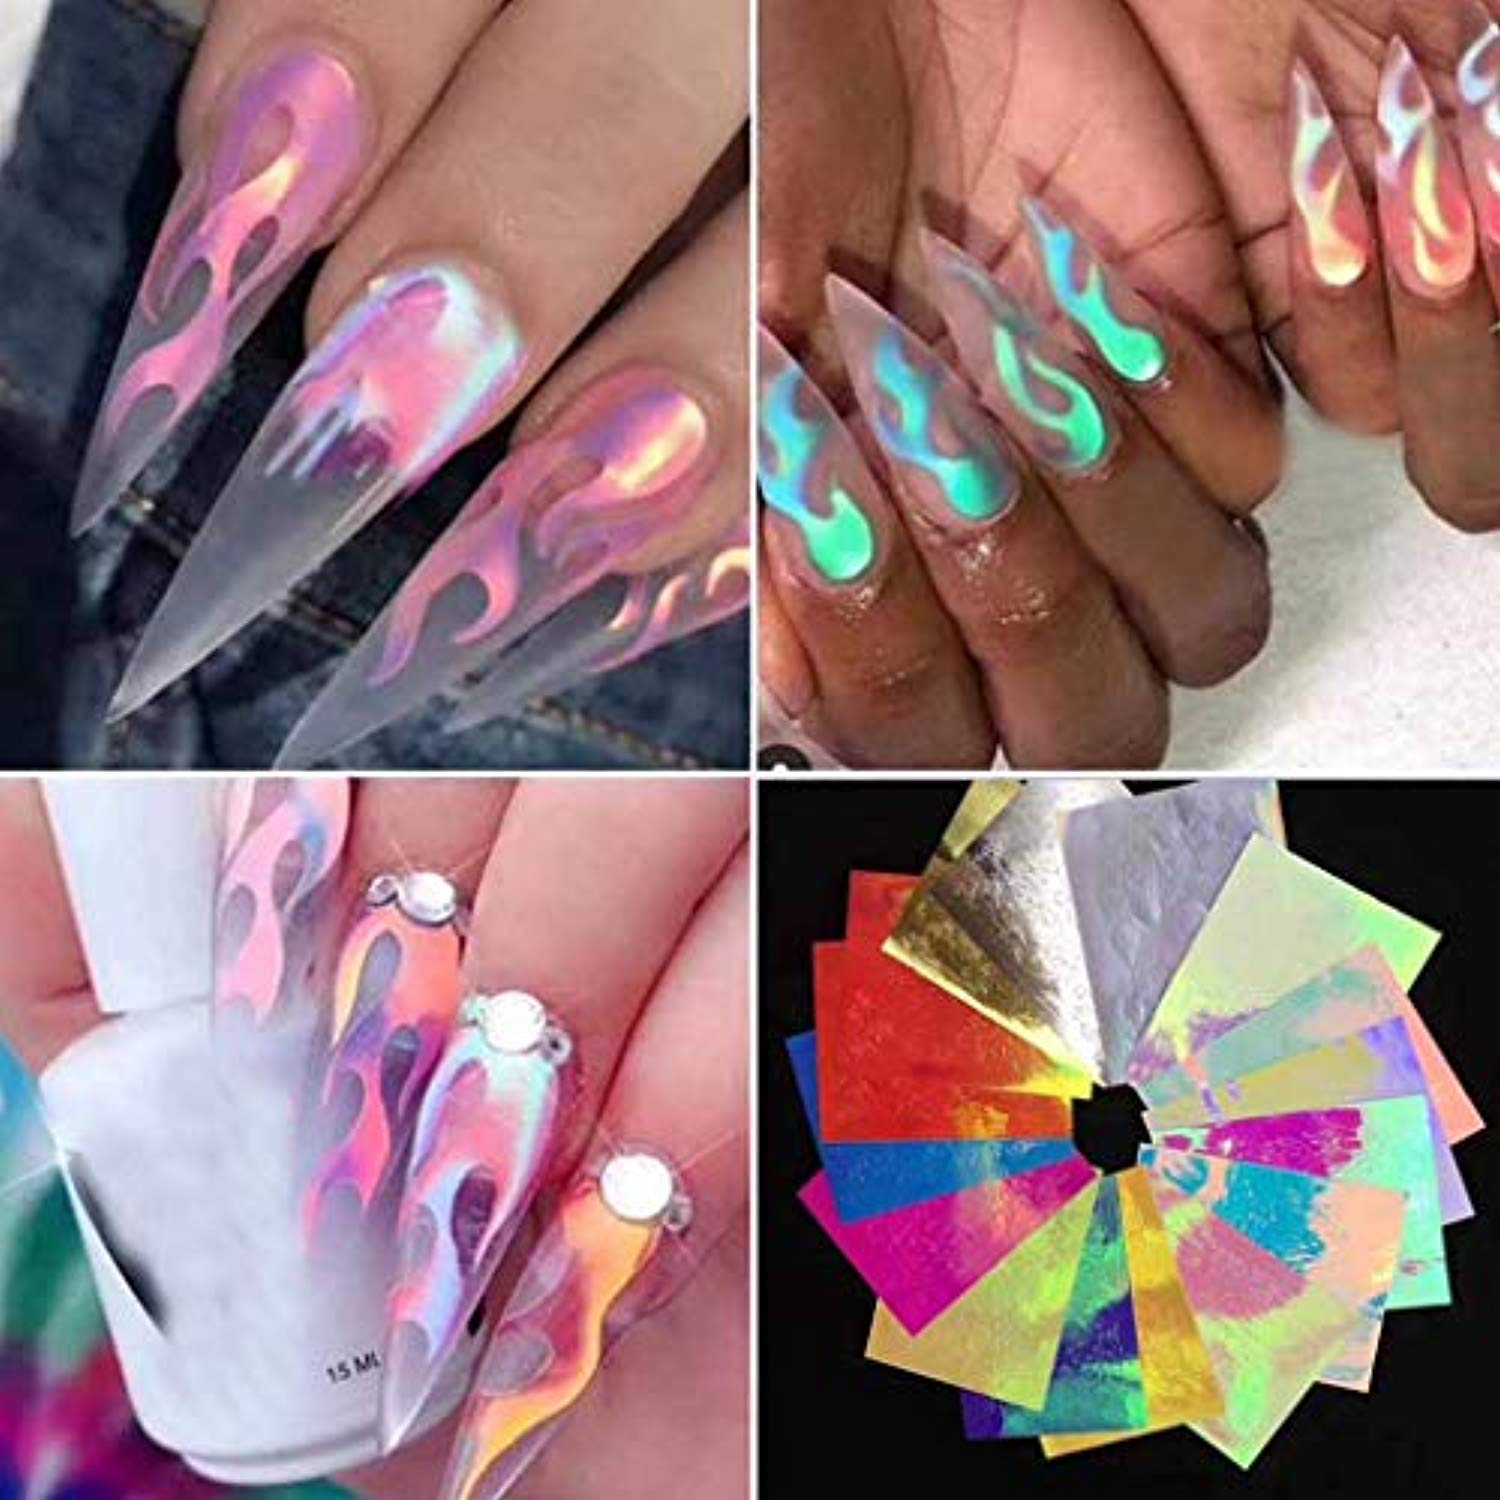 Holographic Fire Flame Nail Art Decals 3D (16pcs)